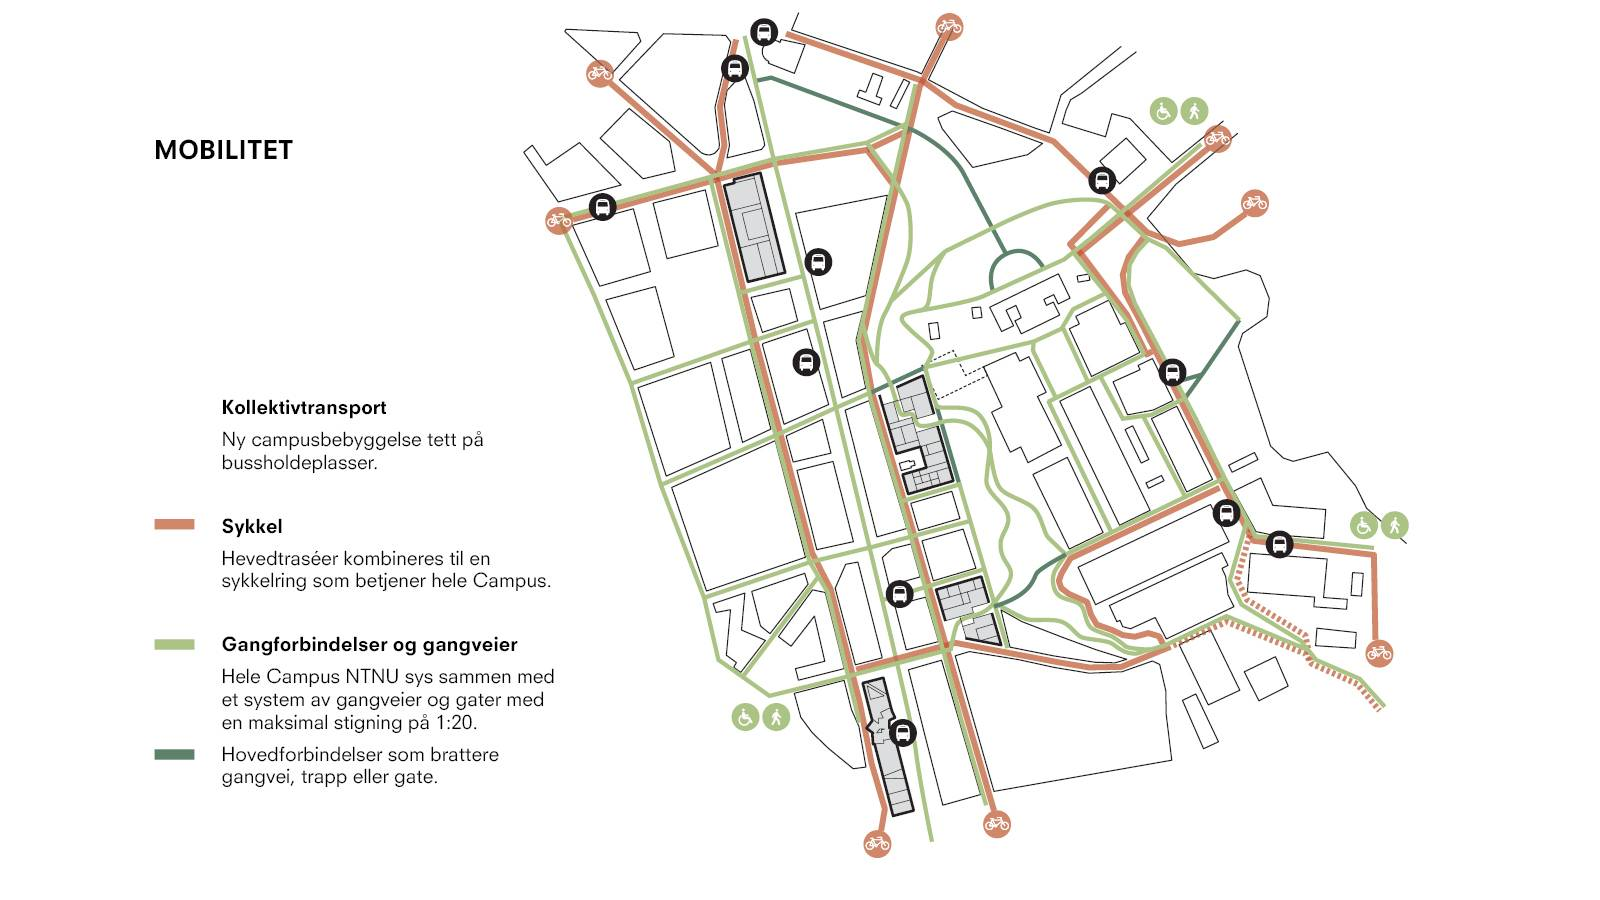 GREEN MOBILITY - NTNU – More Park, More City! - SPOL Architects